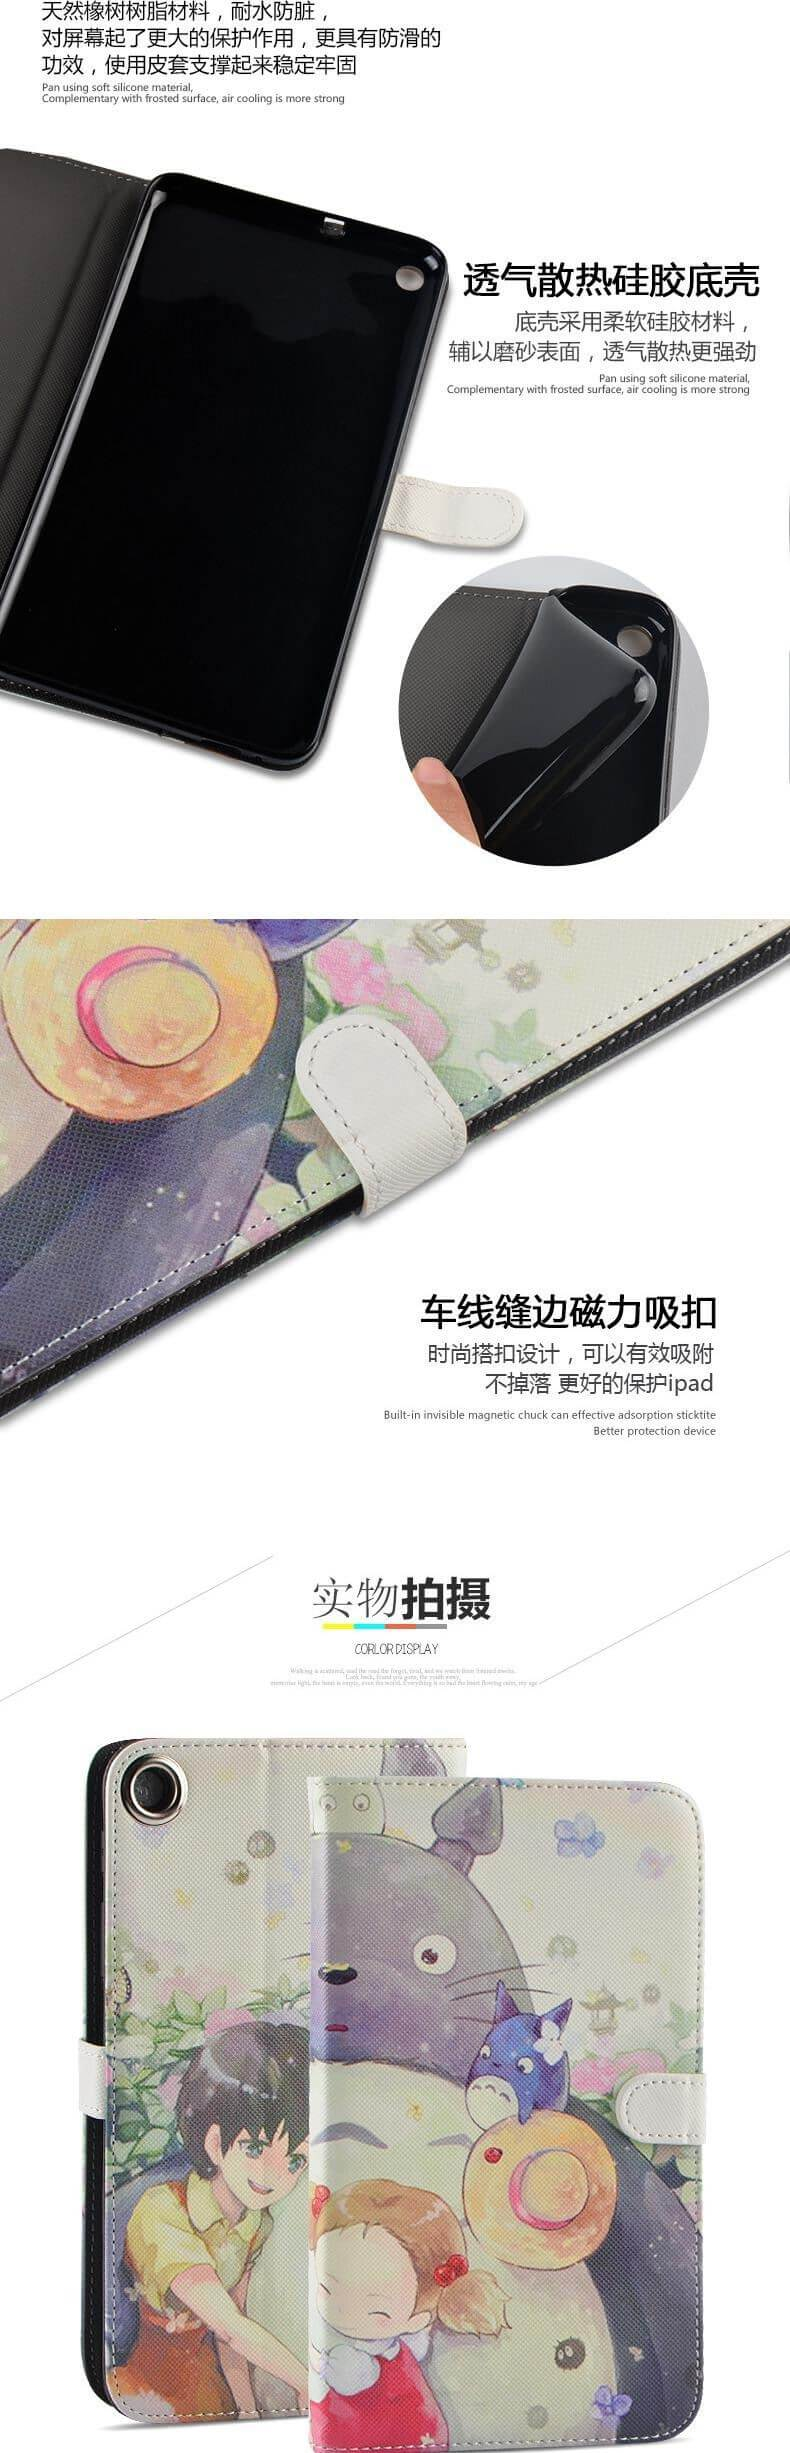 mediapad t1 70 plus case with funny pictures 2 stand and rubber housing inside 2